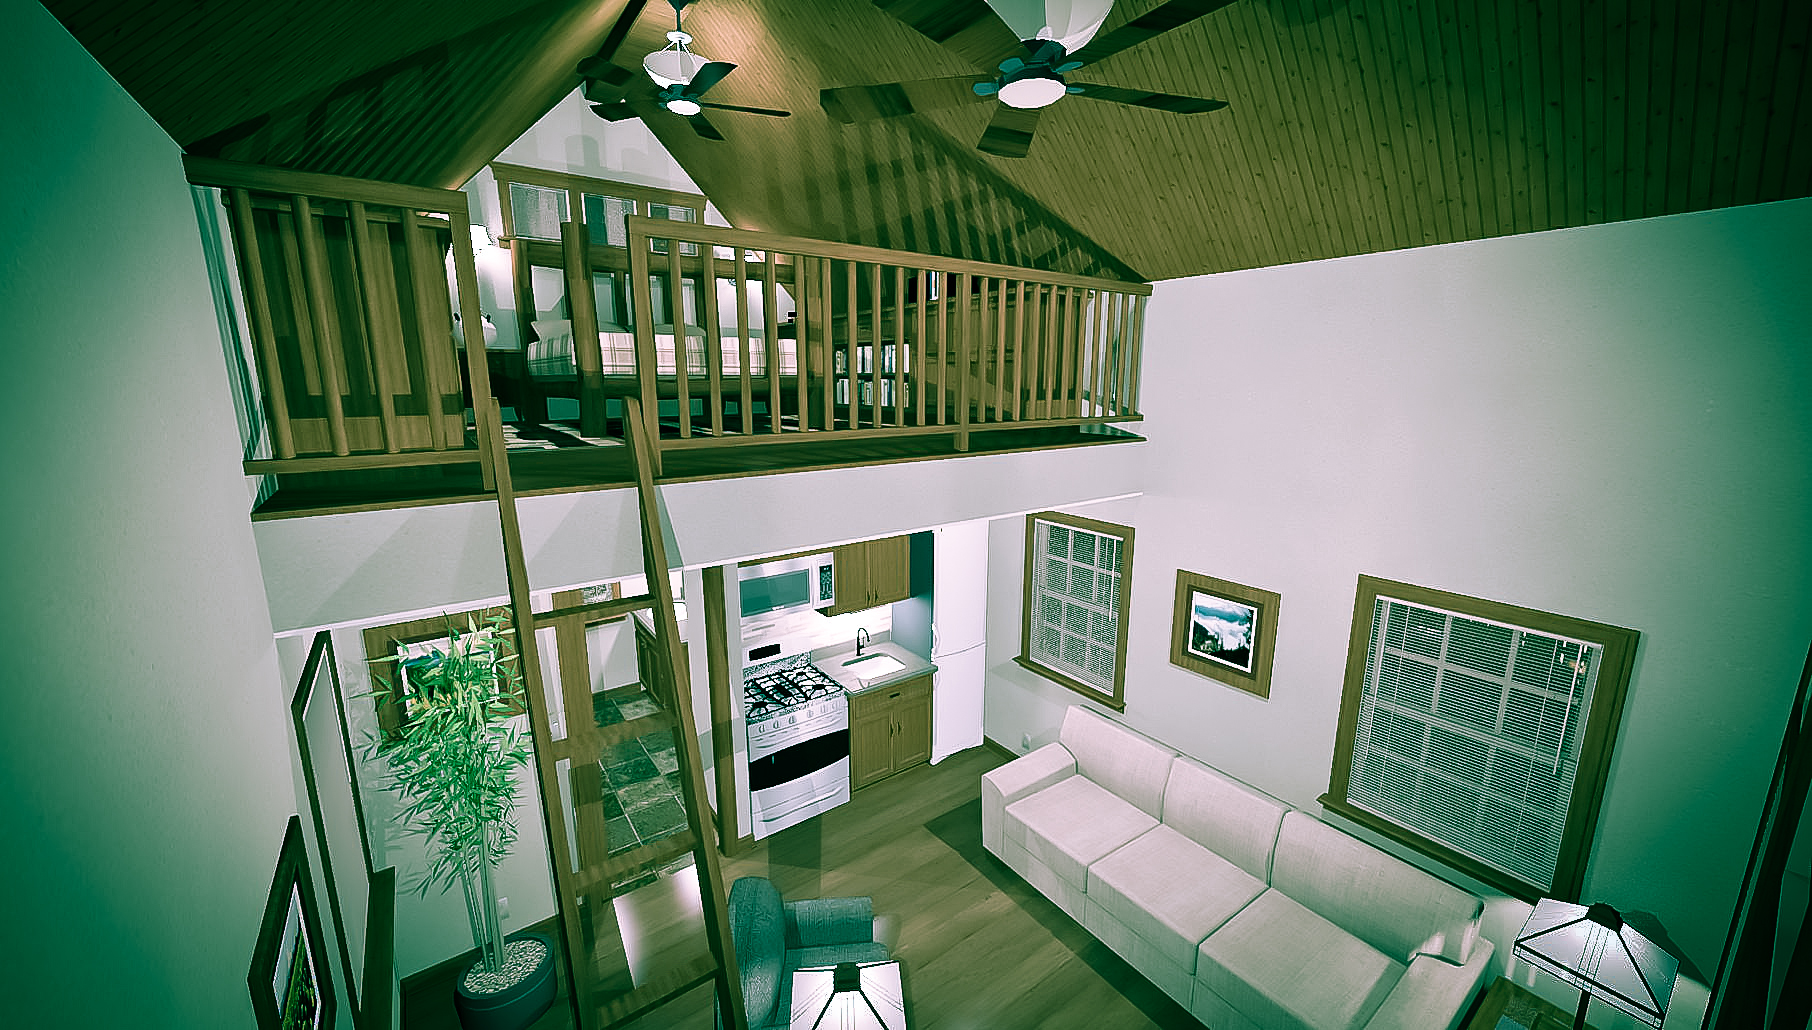 Tiny Homes, Small Homes, Little House Texas, Tiny House Plans, Small Home Plans, Micro Home Plans, Tiny Homes Builders Texas, Small Home Builders, Tiny Houses Plans